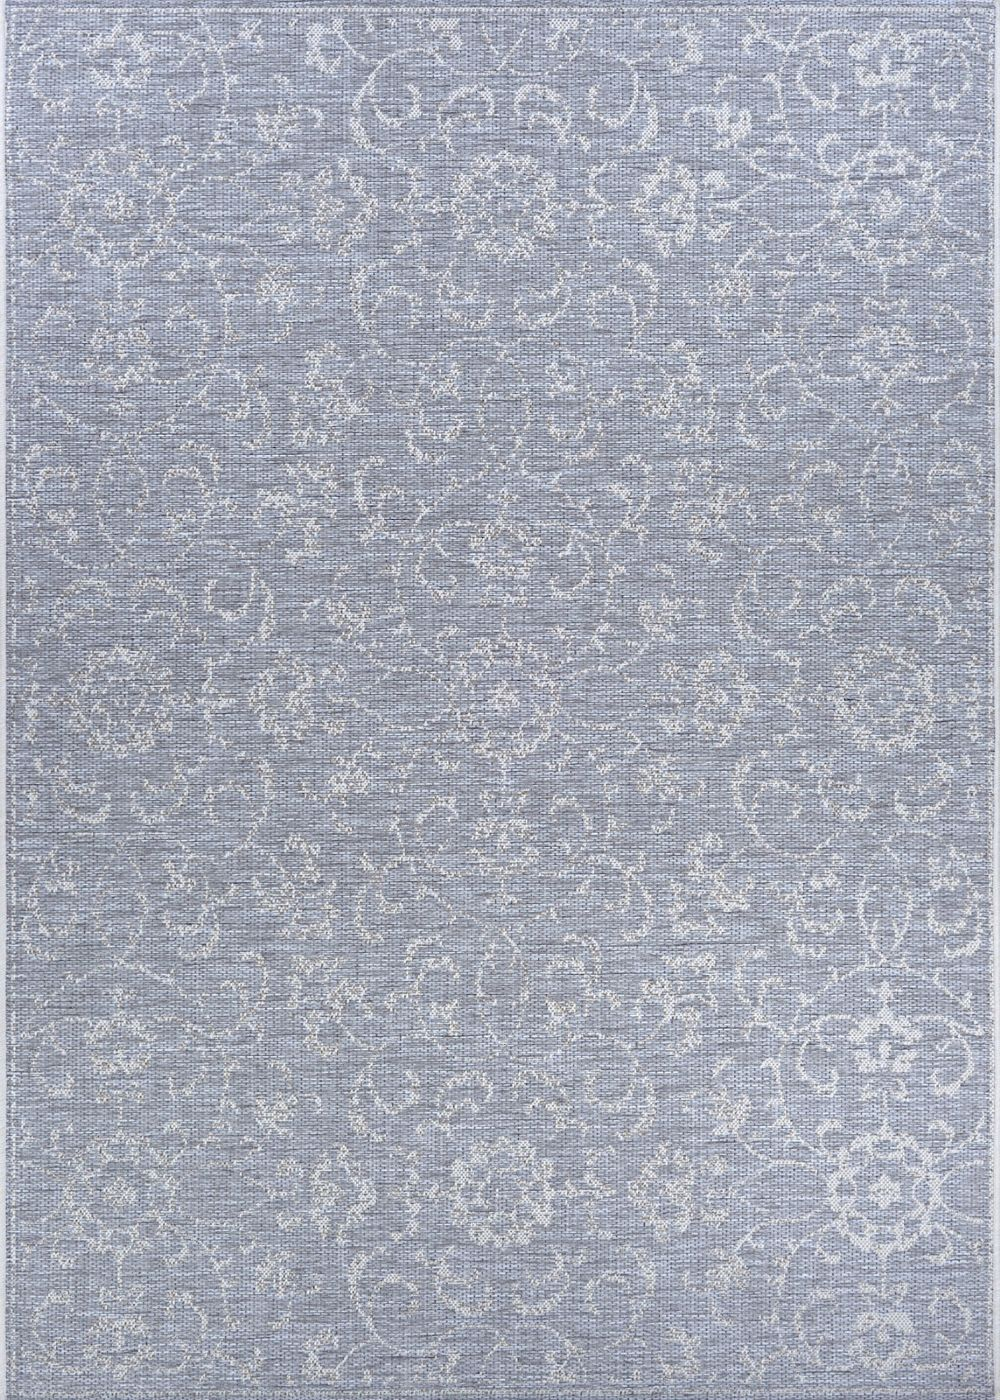 couristan monte carlo country & floral area rug collection